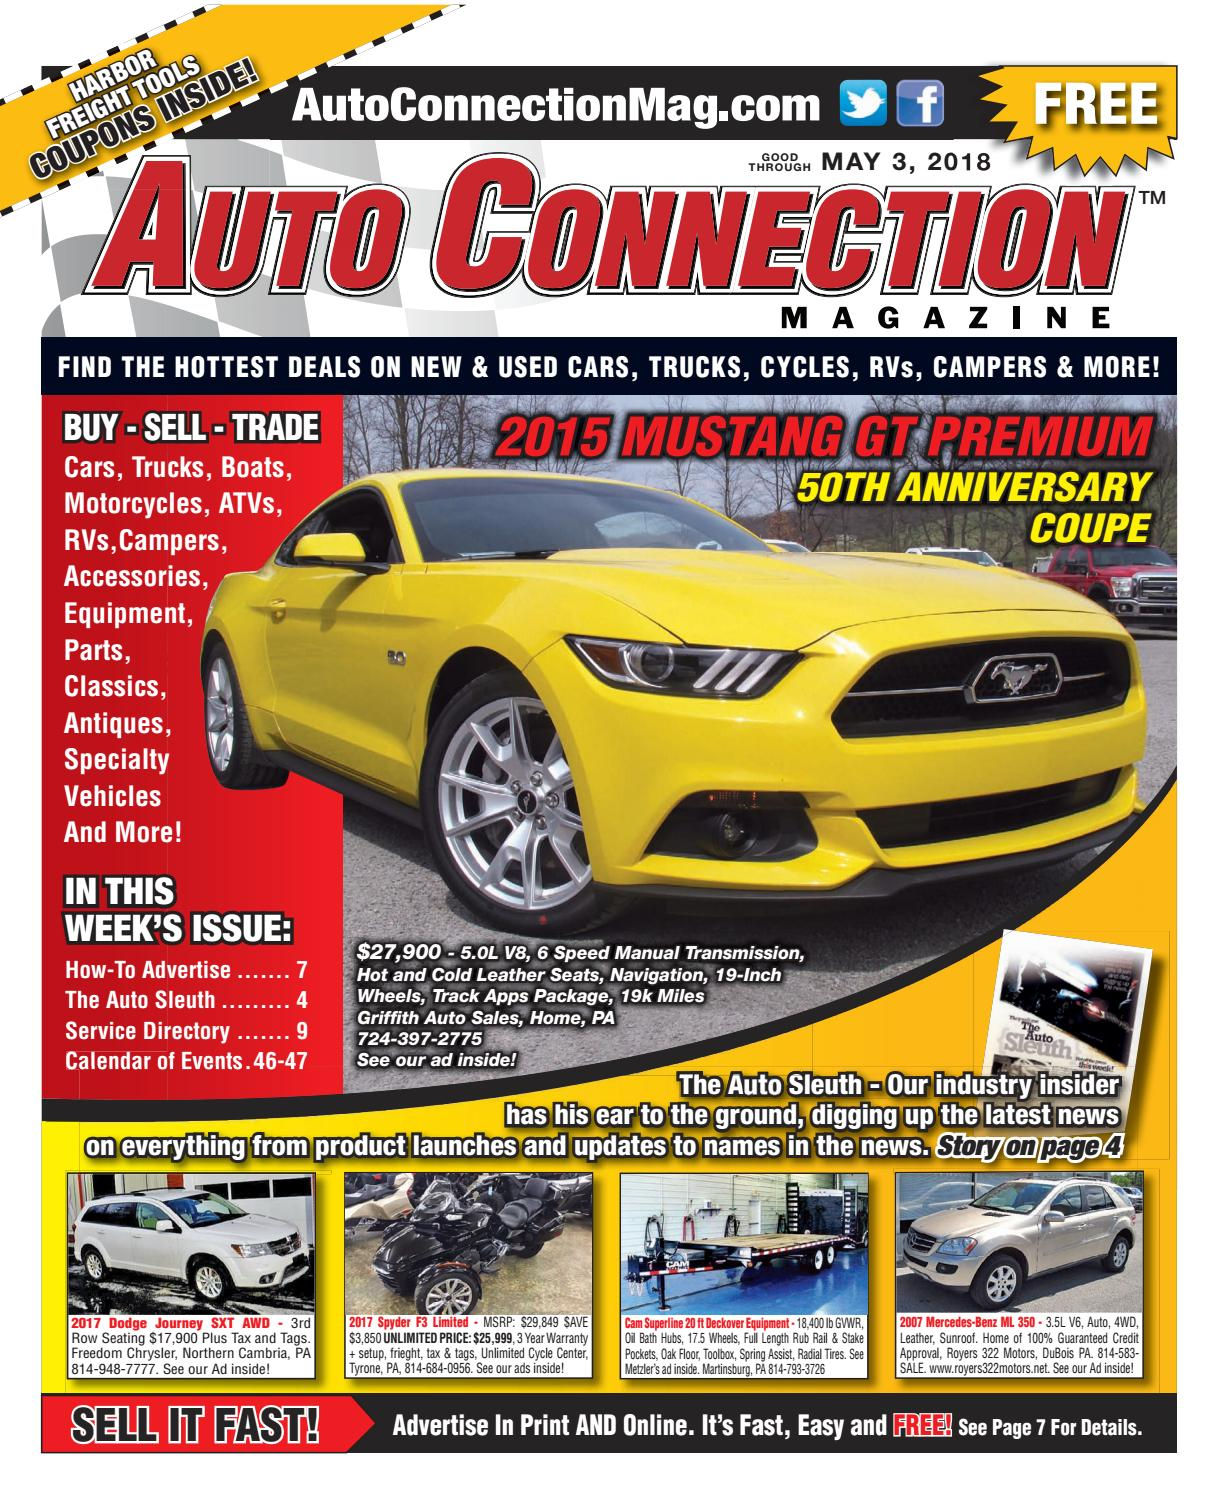 Garage Renault Blain 05 03 18 Auto Connection Magazine